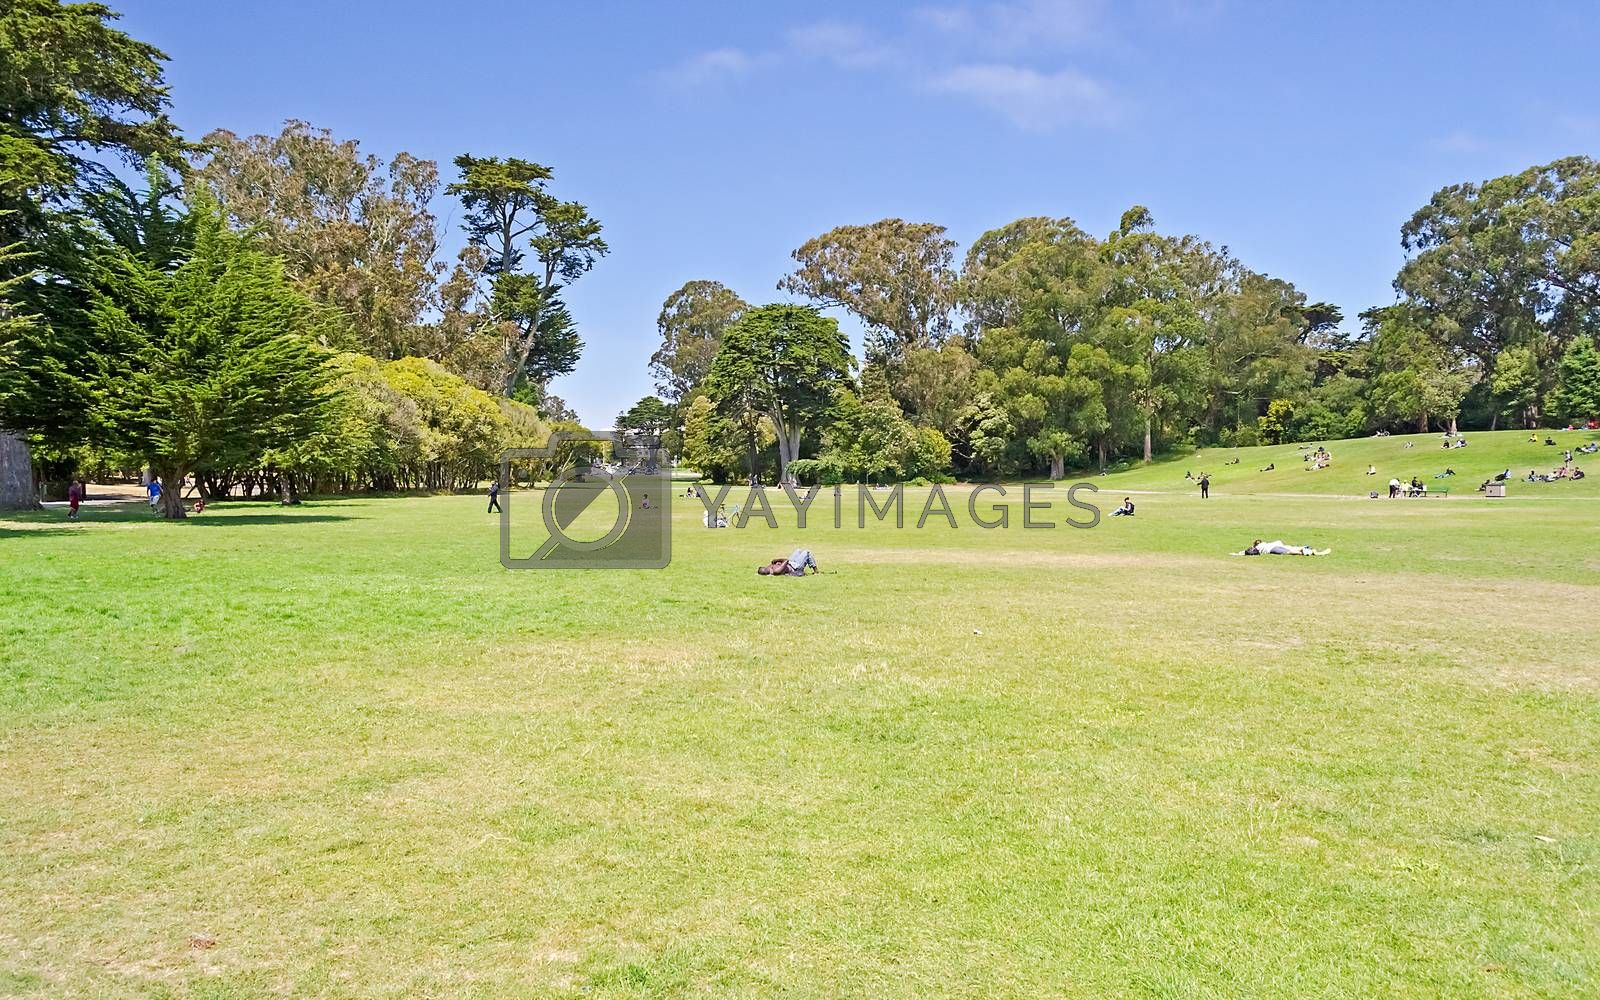 Golden Gate Park, San Francisco, California, USA